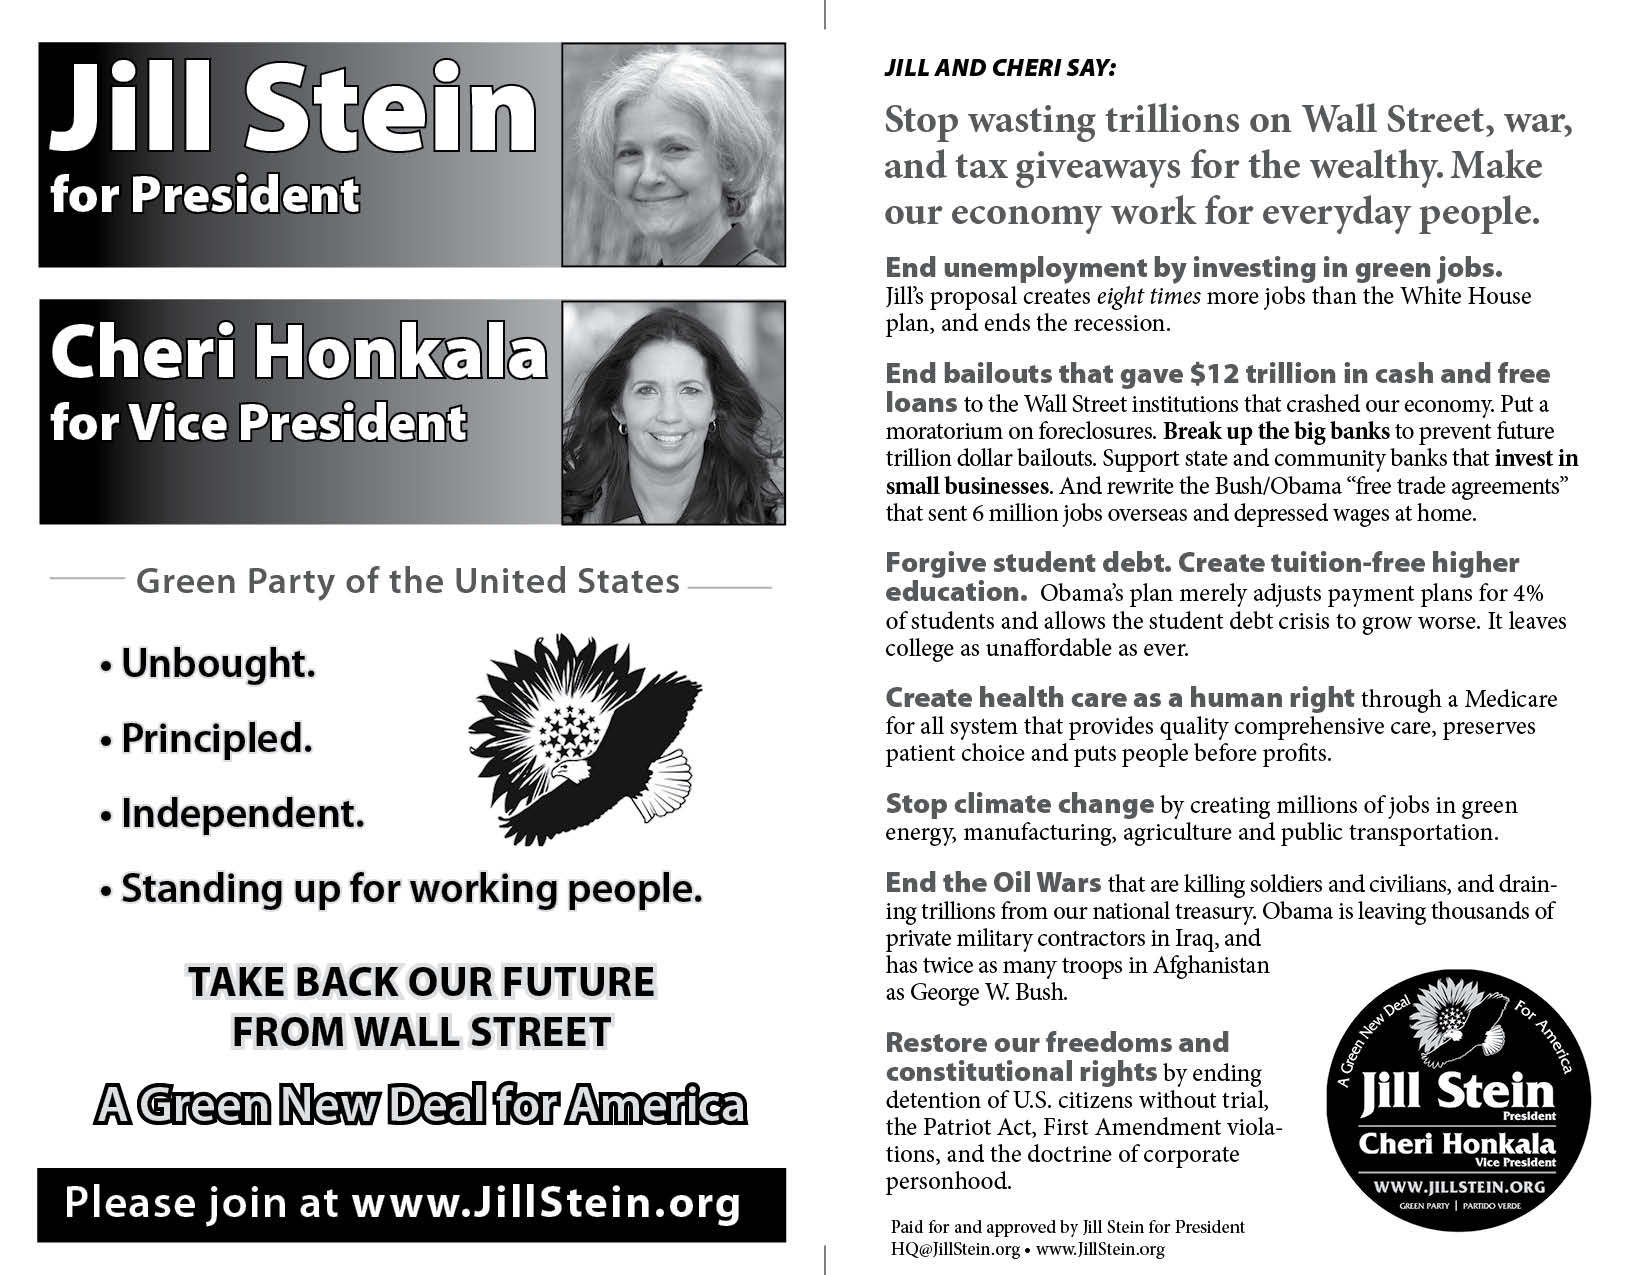 jill_stein_general_brochure_version_4.jpg